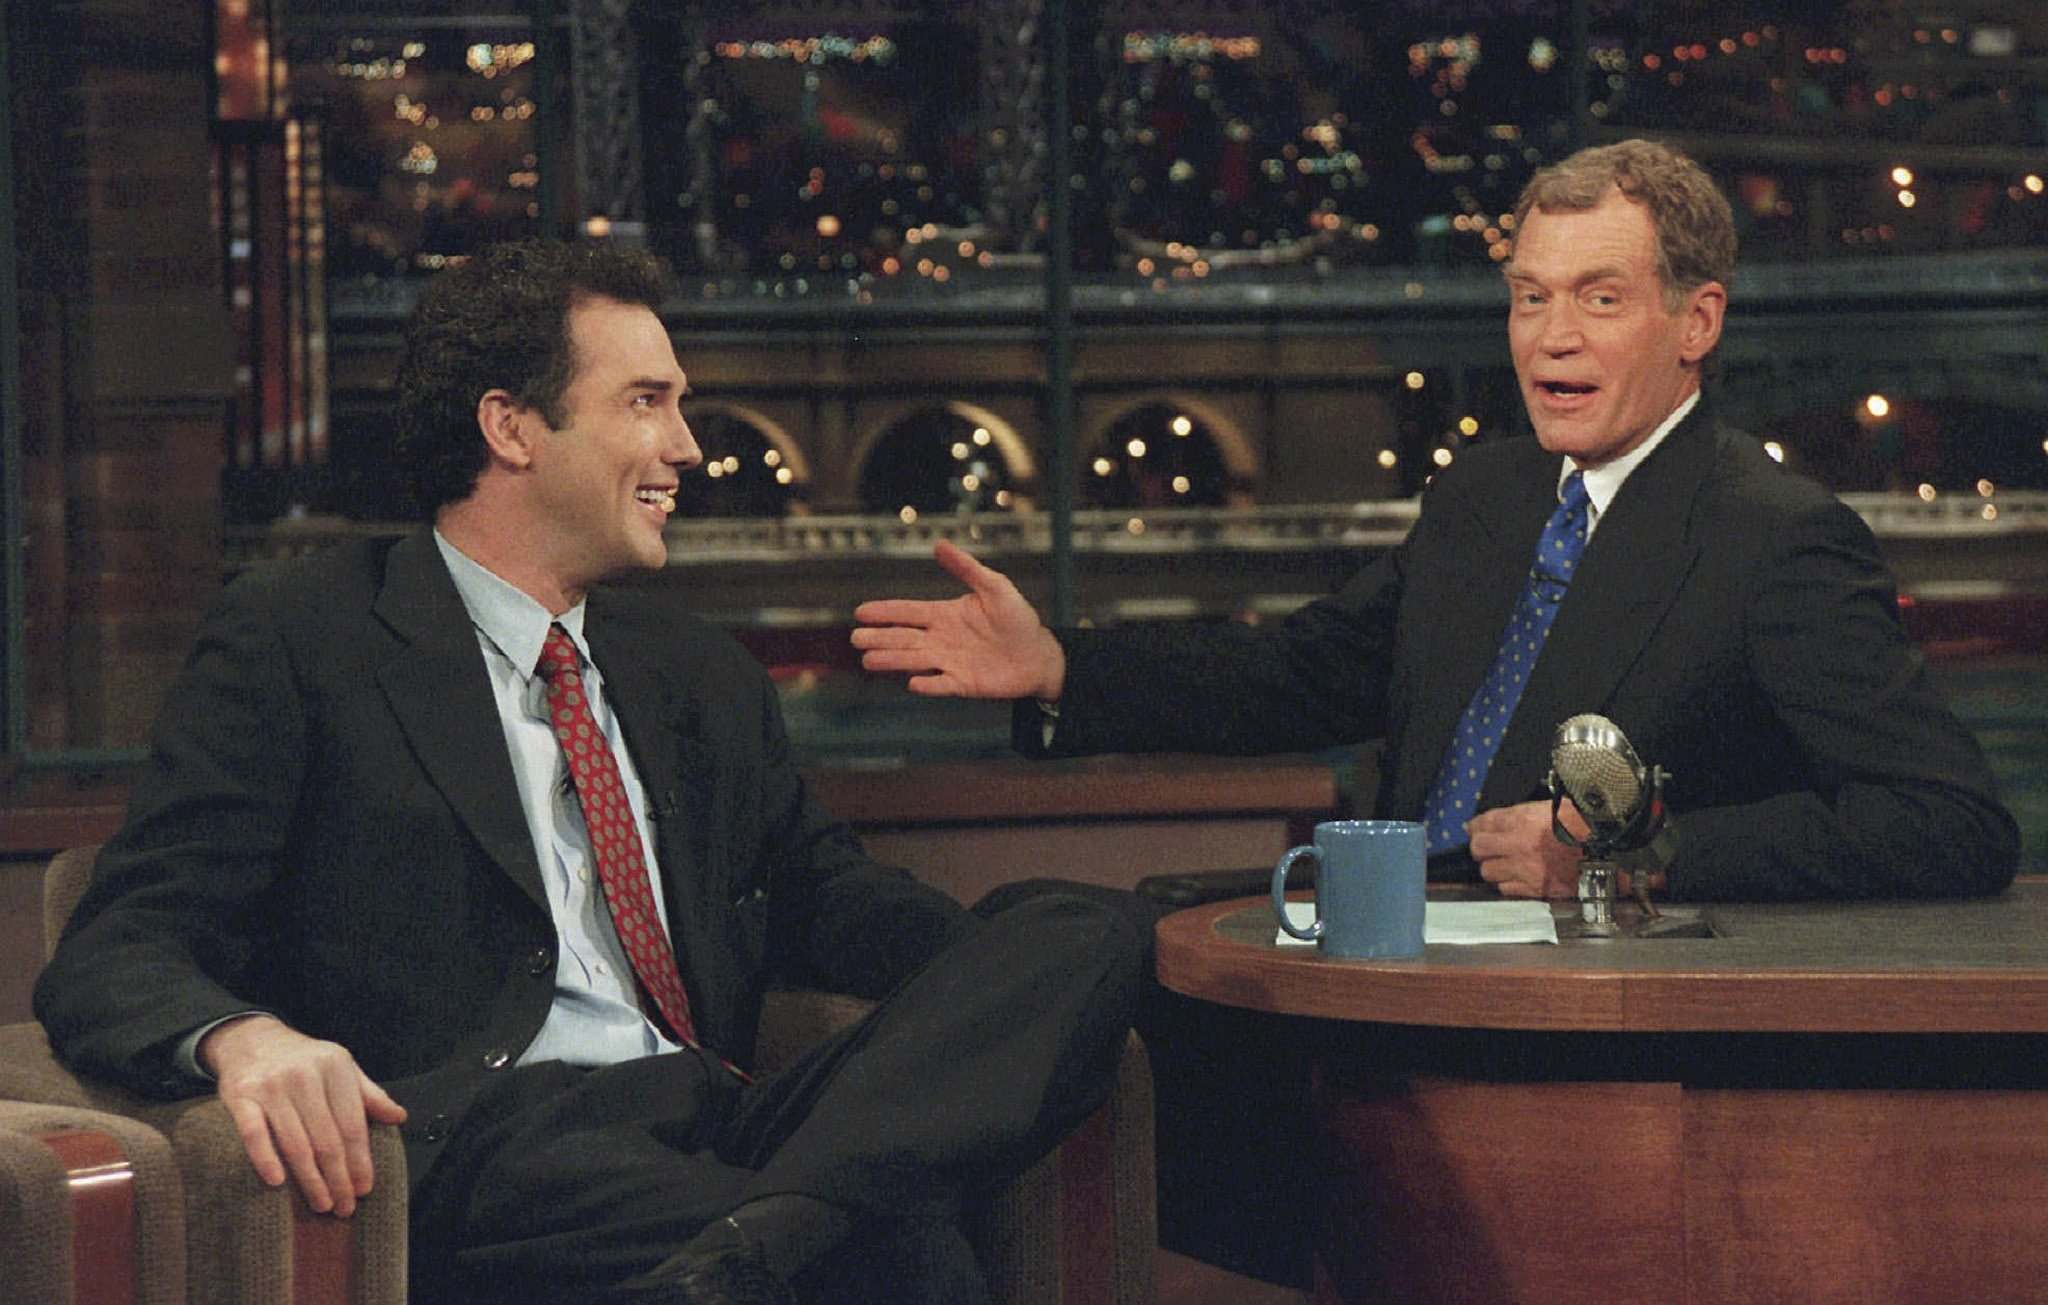 A.F. Singer / CBS files</p><p>Comedian Norm MacDonald (left) was hailed as &#8216;the funniest man in the world&rsquo; by late night TV talk show host David Letterman.</p></p>